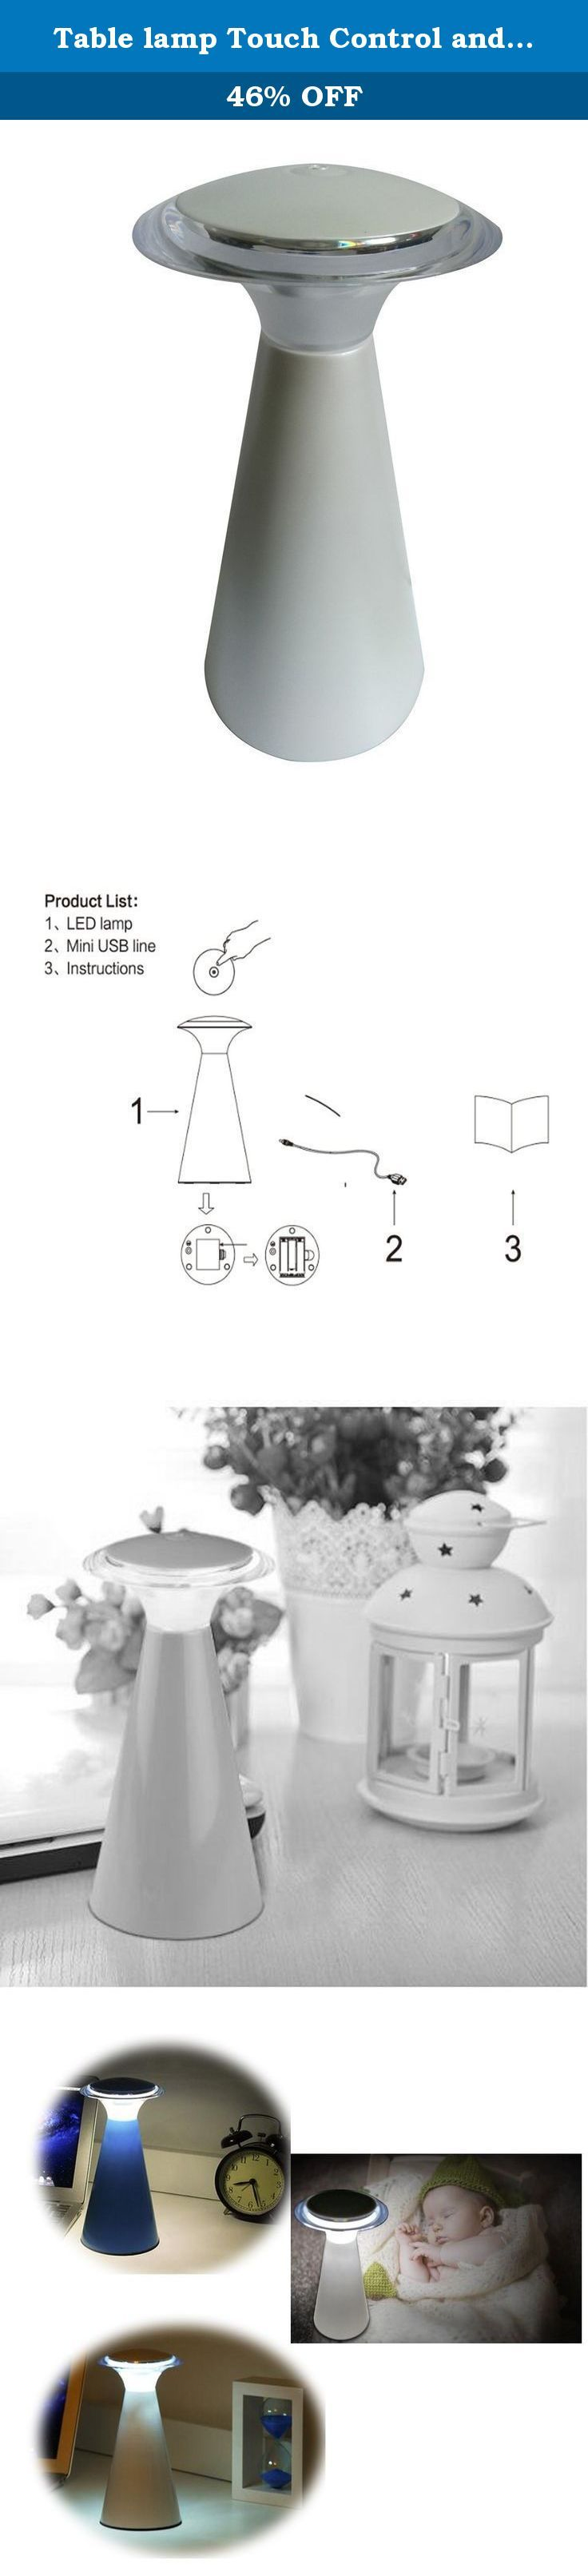 Table lamp Touch Control and USB Jack Personality Desk lamp,LED Lanterna,Pearl White (Pearl White). The lights look like a lighthouse, release a beautiful soft light, bring light and hope.Widely used in the bedroom, sitting room, study, corridor, toilet, etc.Power source:3AA Batter(Excluded) or USB(Included) or Adap Battery operating Time ter(Excluded) I/P:100-240V AC 50/60HZ,O/P:5V DC 500mA.The use of simple method, touch the top of the lamp switch logo can glow, touch again is to turn…